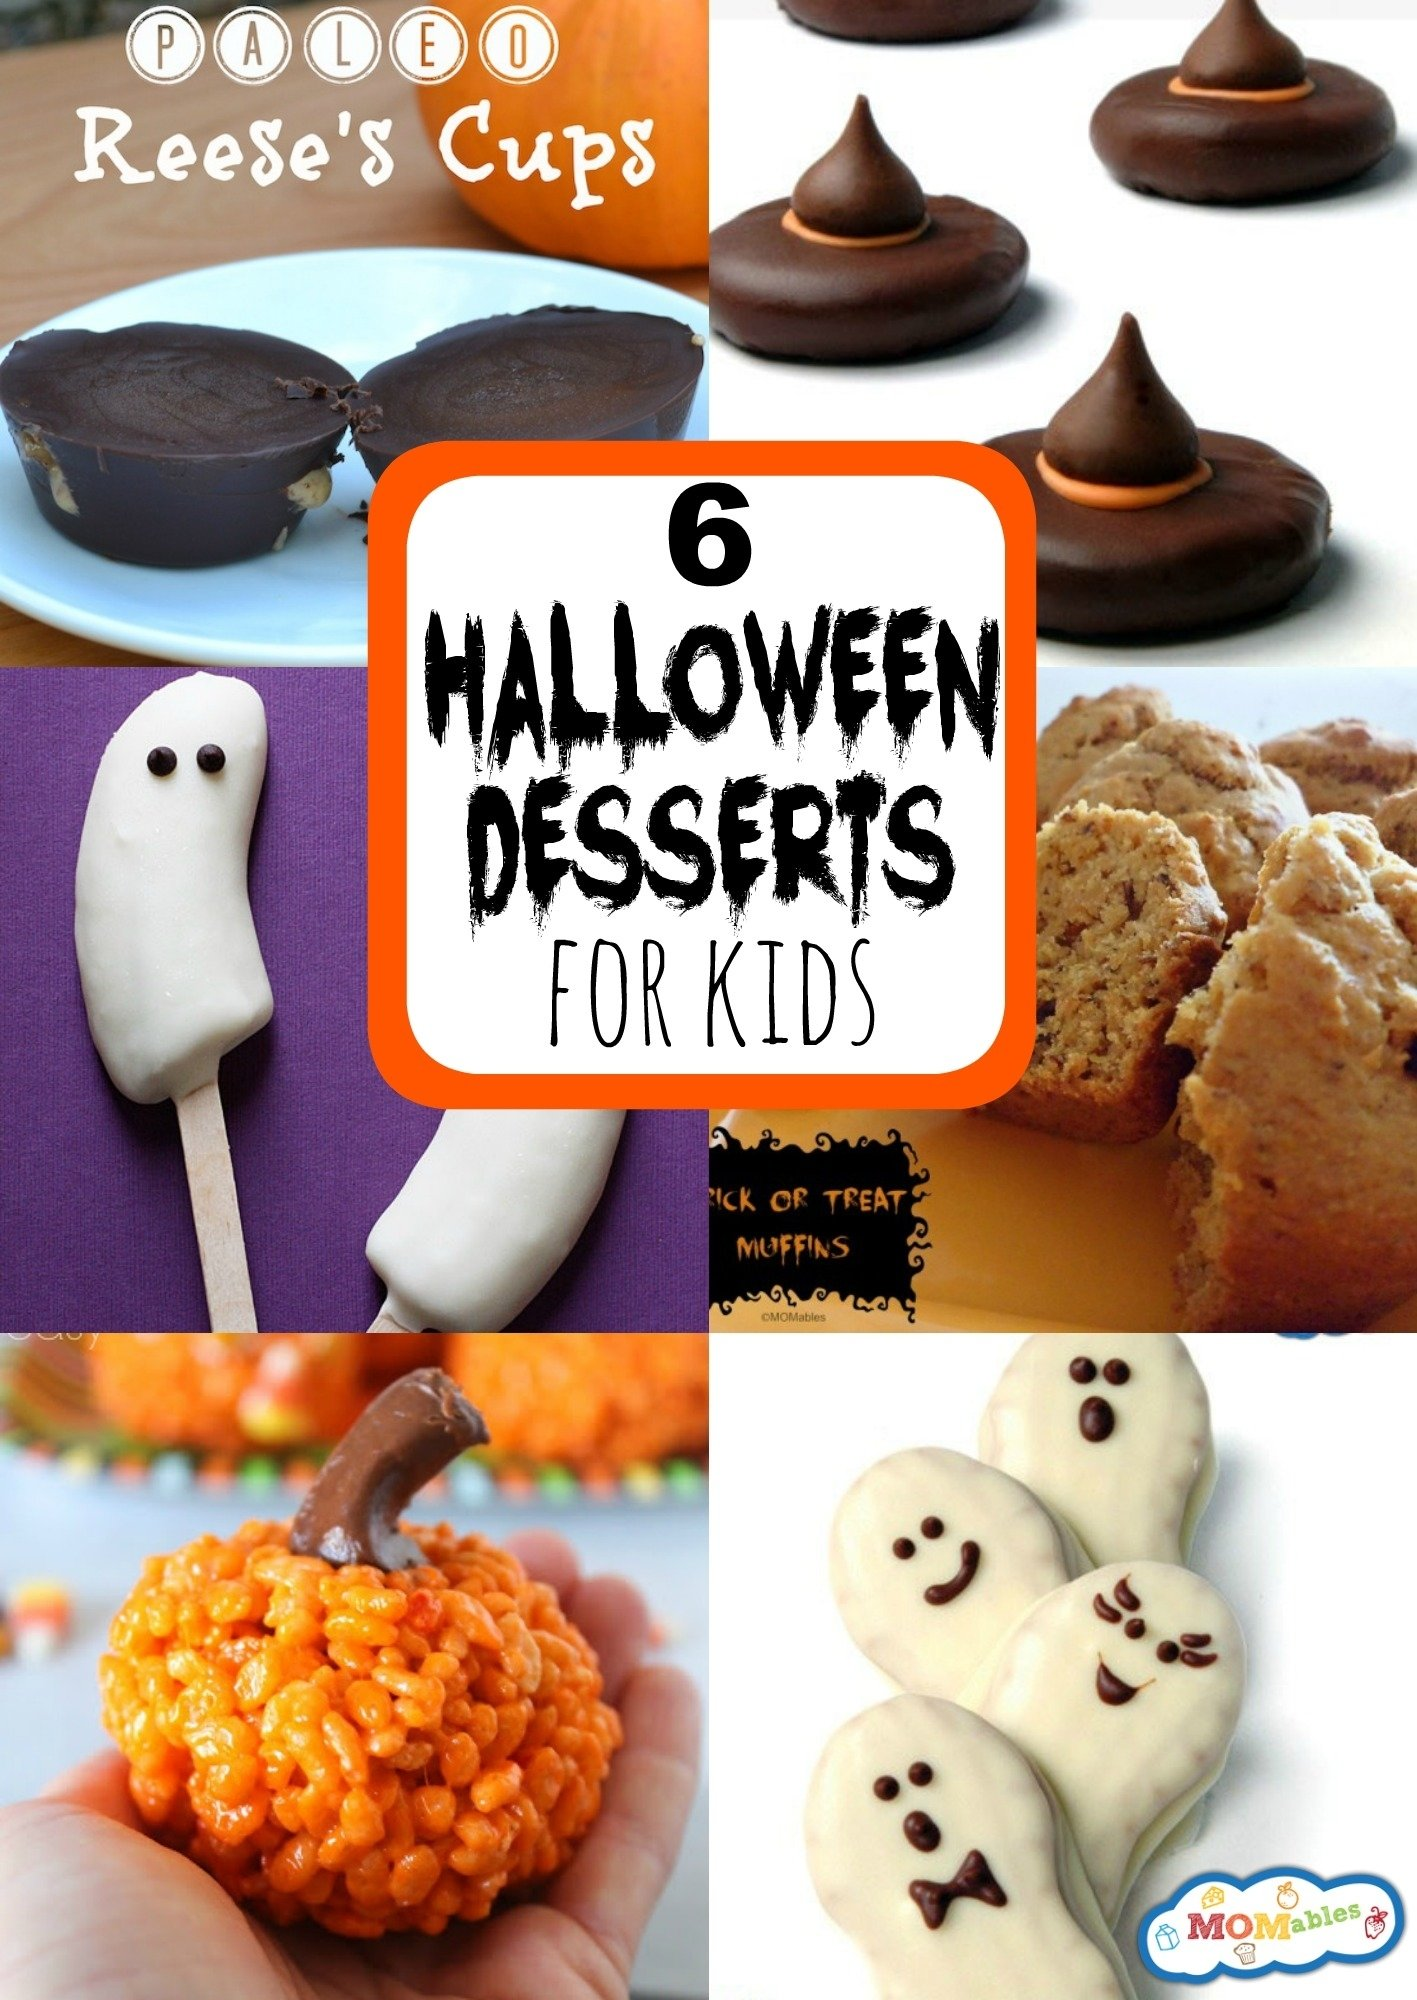 10 Unique Halloween Dessert Ideas For Kids healthy halloween treats archives momables good food plan on it